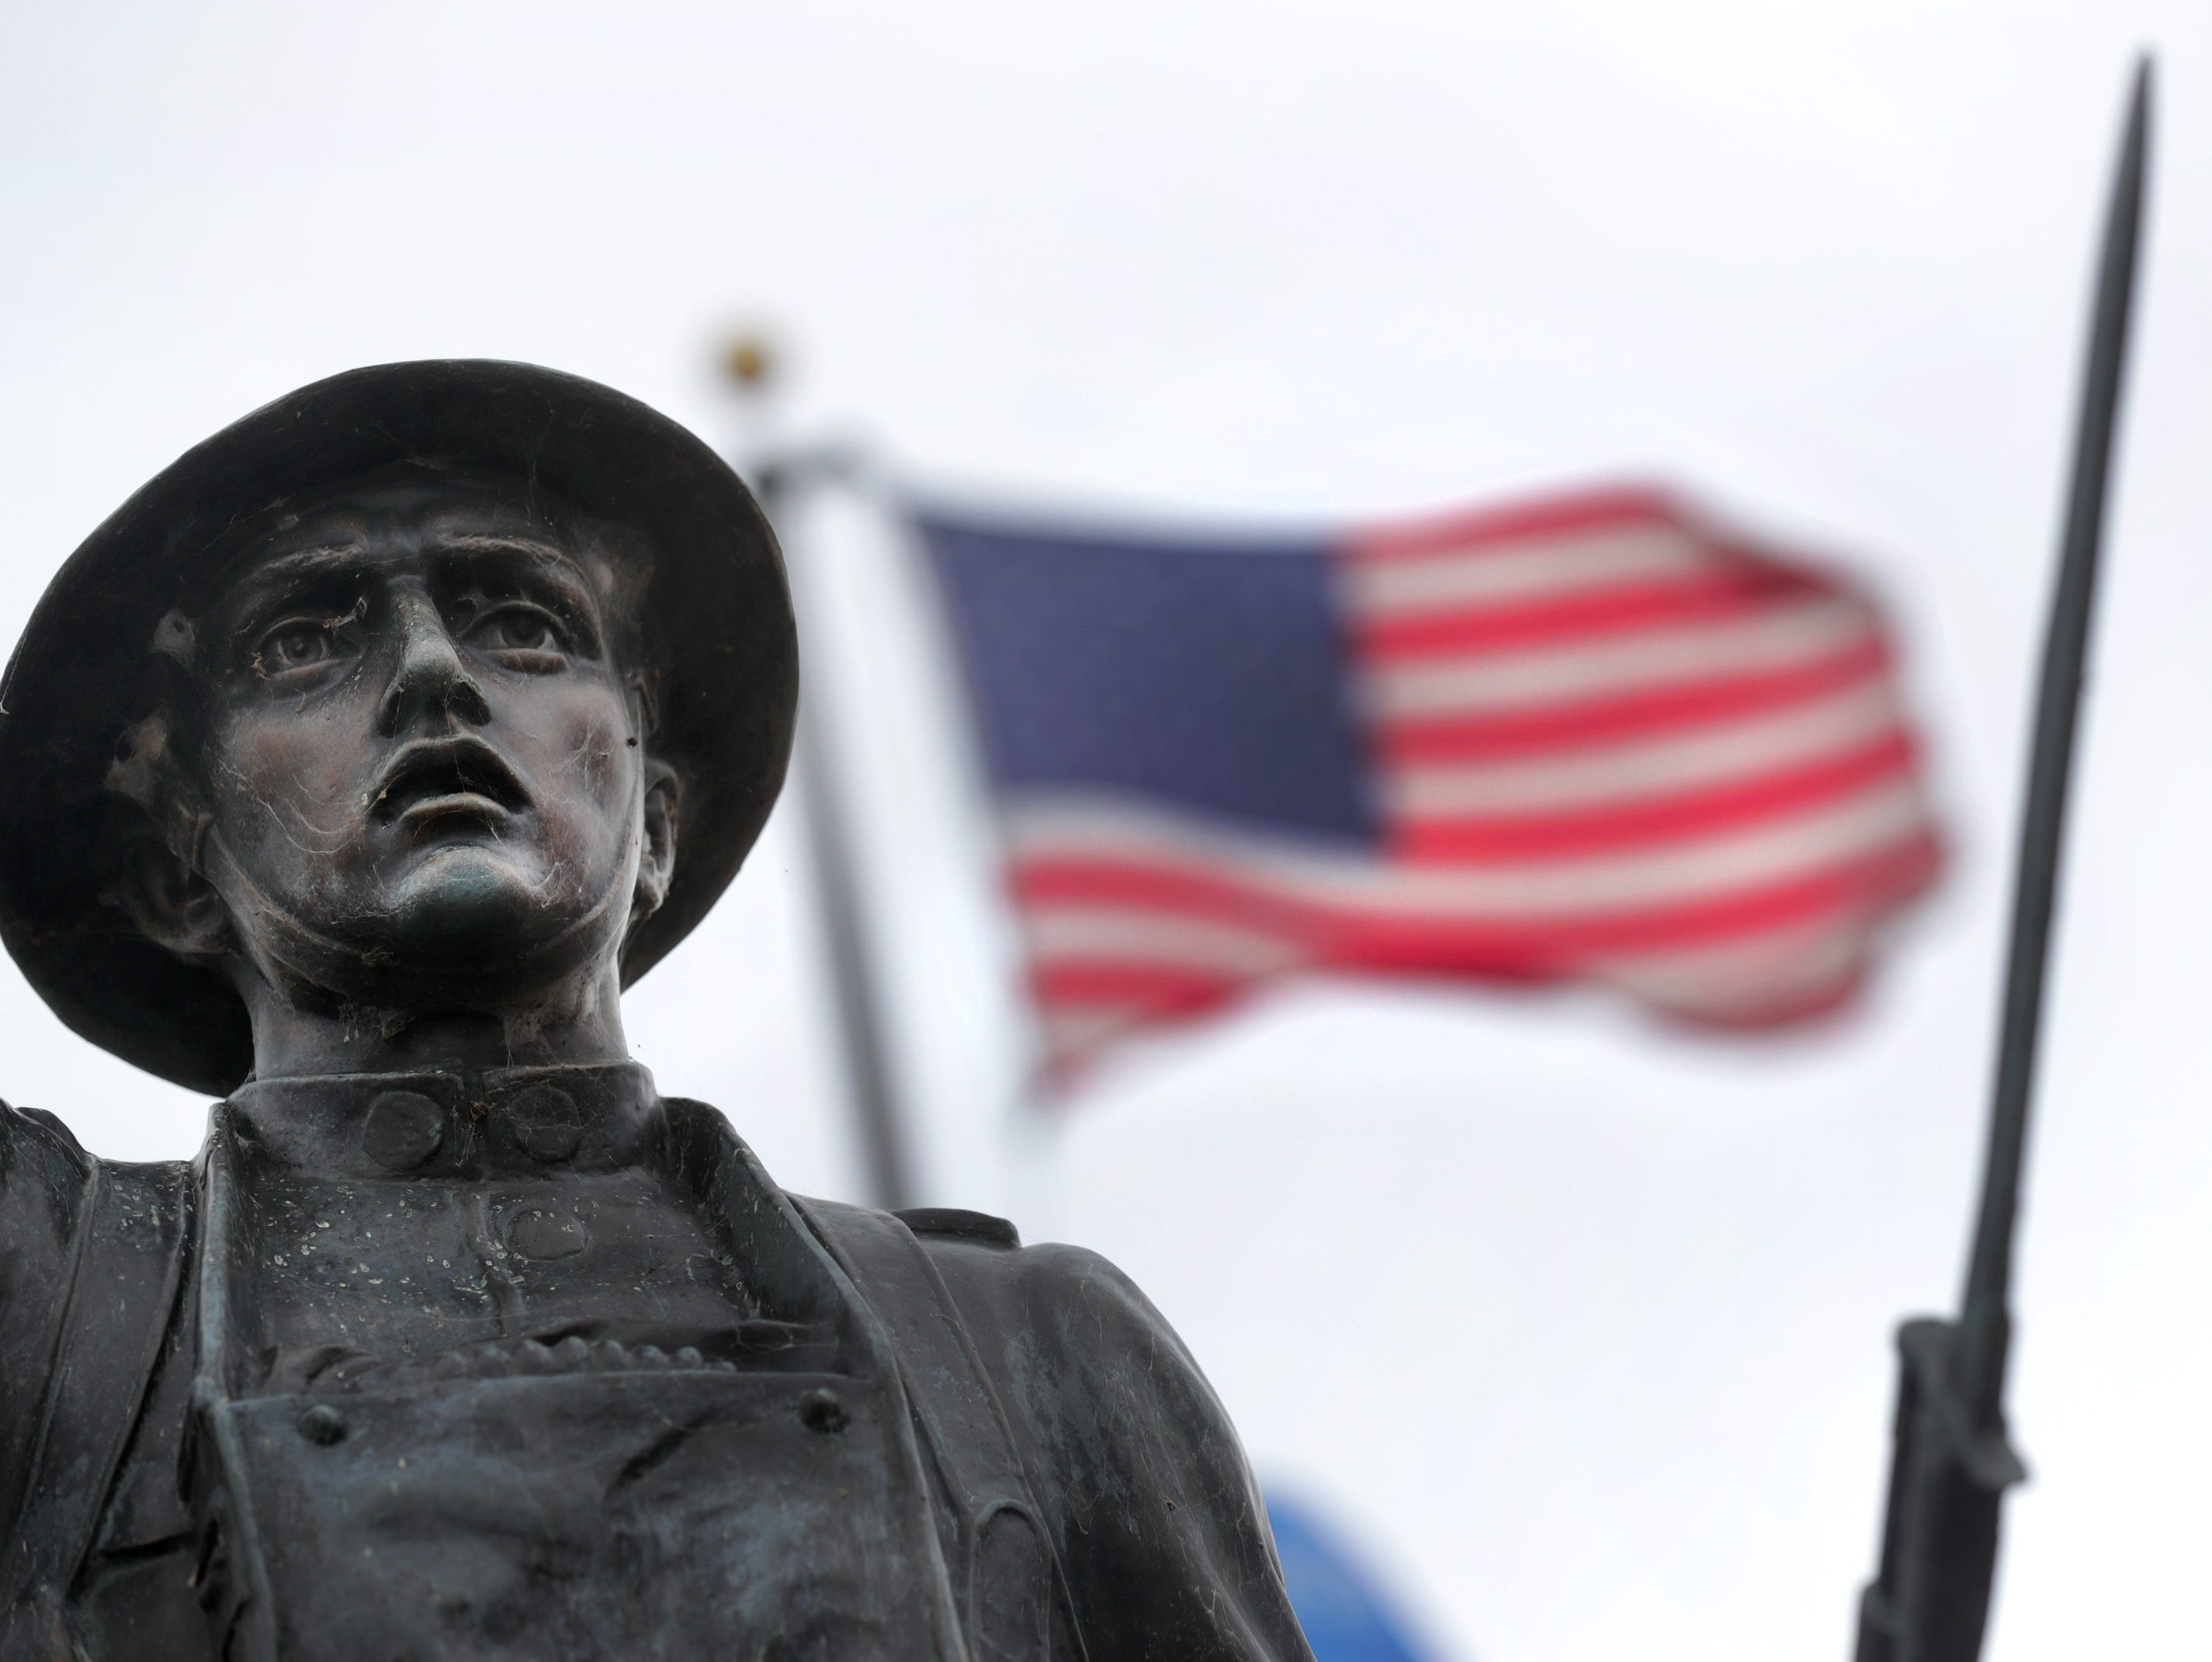 Statue depicting a World War I douighboy on S. Memorial Dr. on Wednesday, November 7, 2018, in Appleton, Wis. 